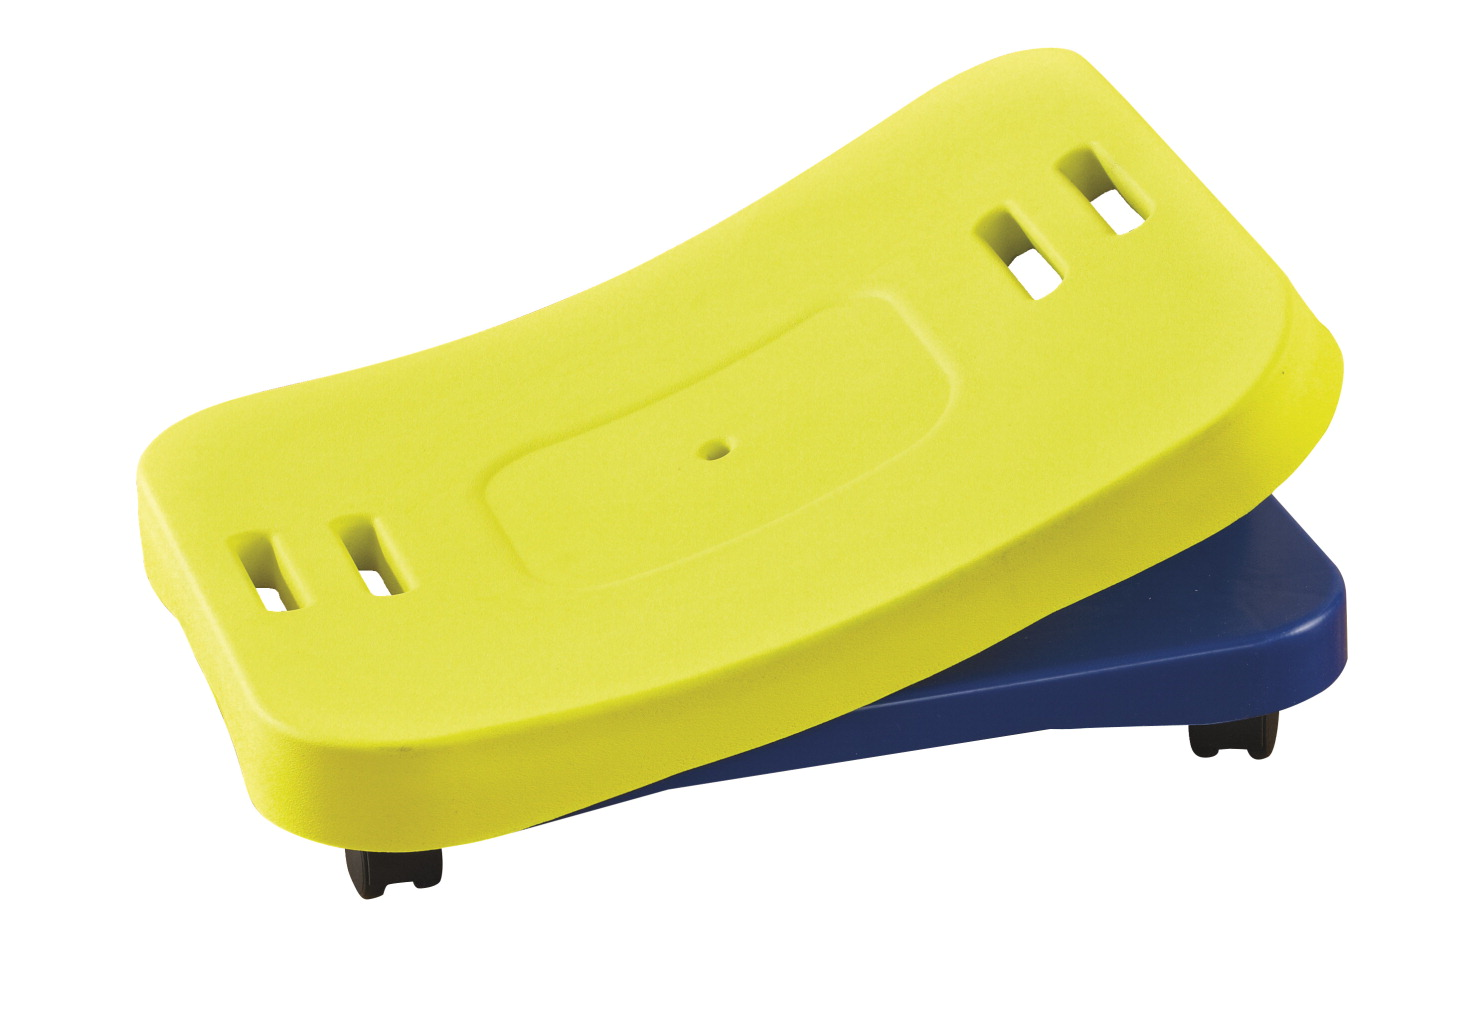 Sportime Scooter Lah-Tee Foam Pad, Yellow